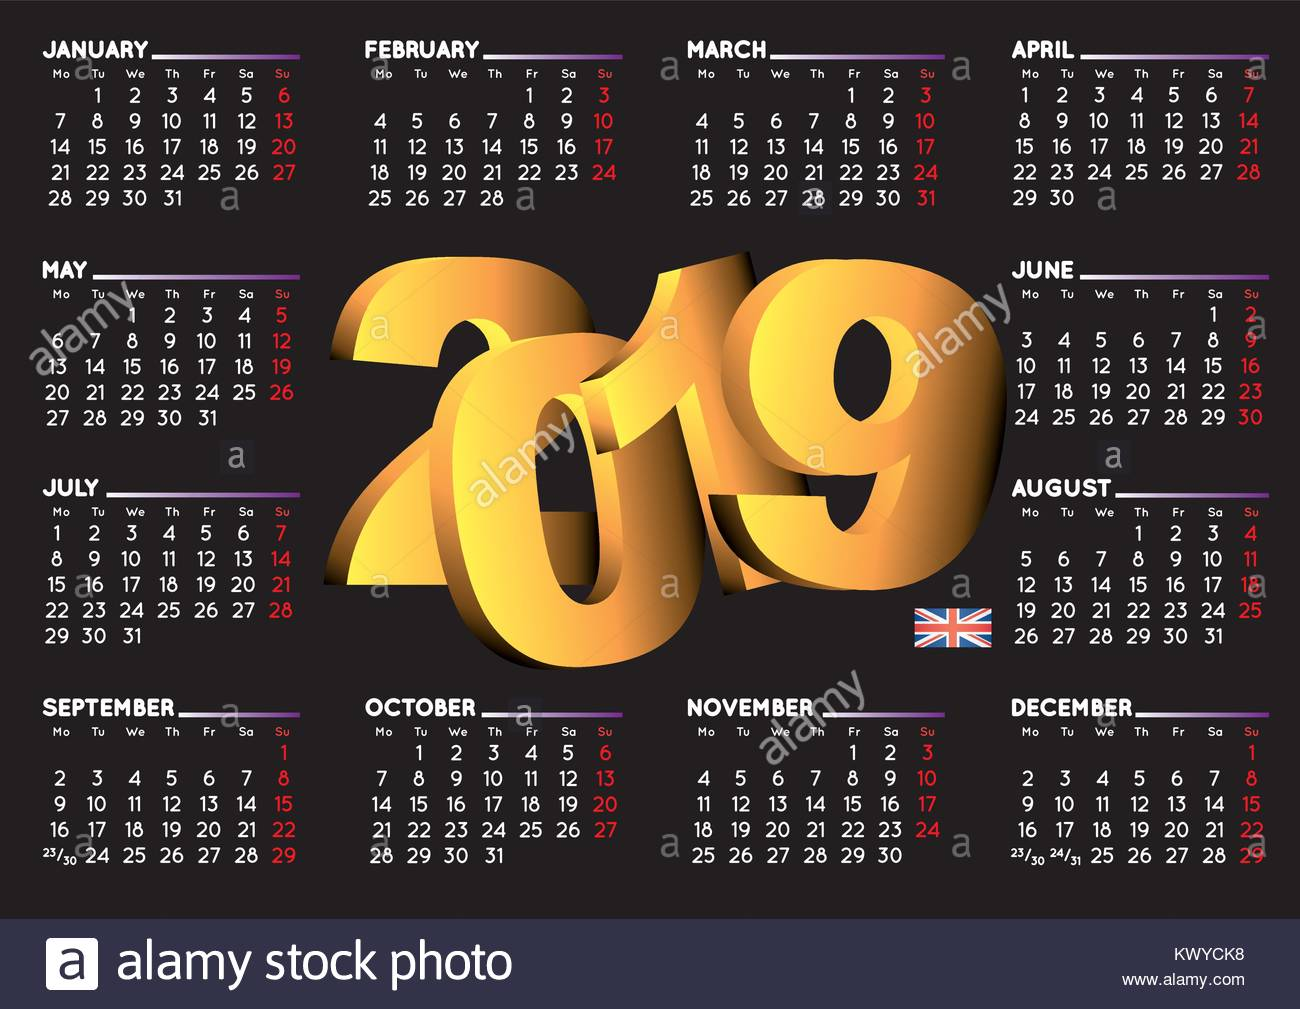 2019 black calendar in english uk year 2019 calendar calendar 2019 week starts on monday uk format